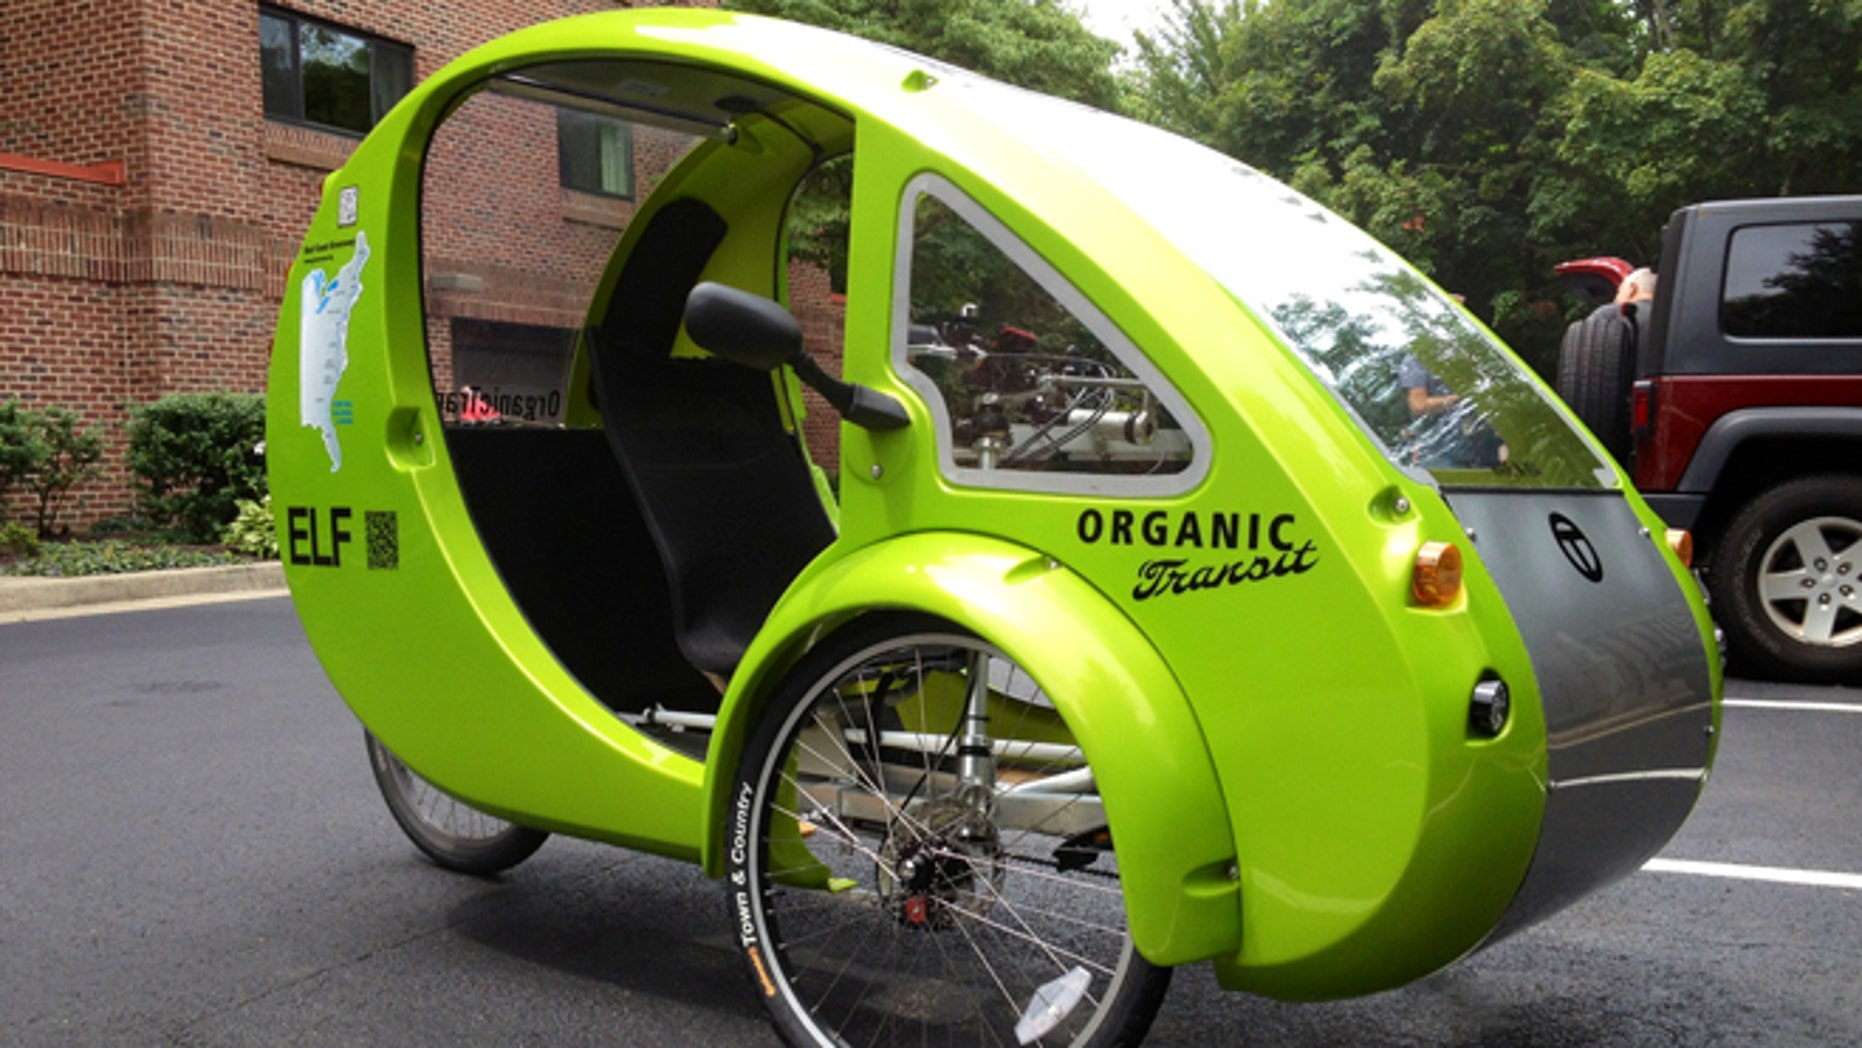 July 24 2017 This Photo Shows The Organic Transits Elf Bike In A Parking